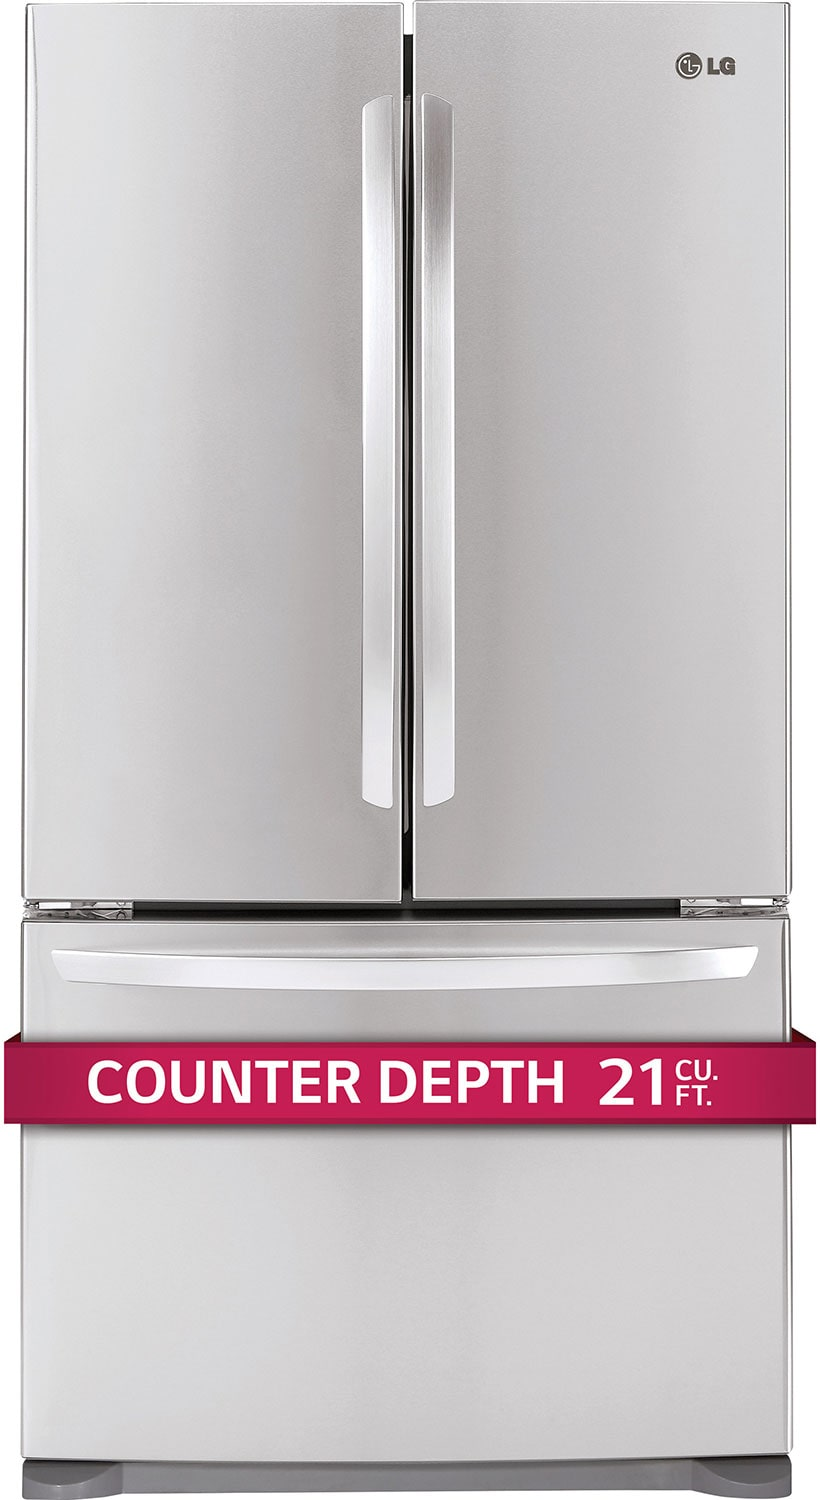 LG Stainless Steel Counter-Depth French Door Refrigerator (20.7 Cu. Ft.) - LFC21776ST